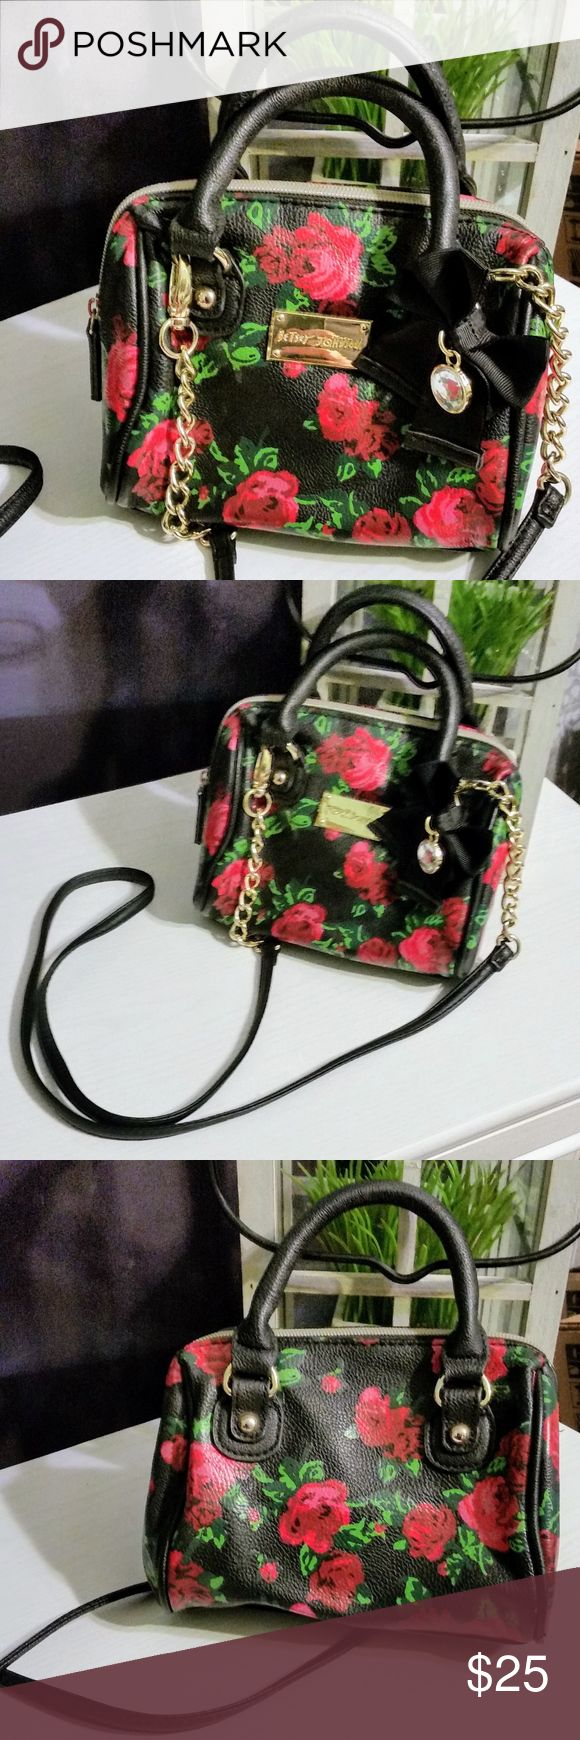 Betsey Johnson Rose Mini Purse Betsey Johnson Rose Mini Purse. Colors are black, red, green, and gold. Excellent condition. Can be used with handles or as a cross body purse. Great with any outfit.  SIZE 7 x 3 x 5 inches Betsey Johnson Bags